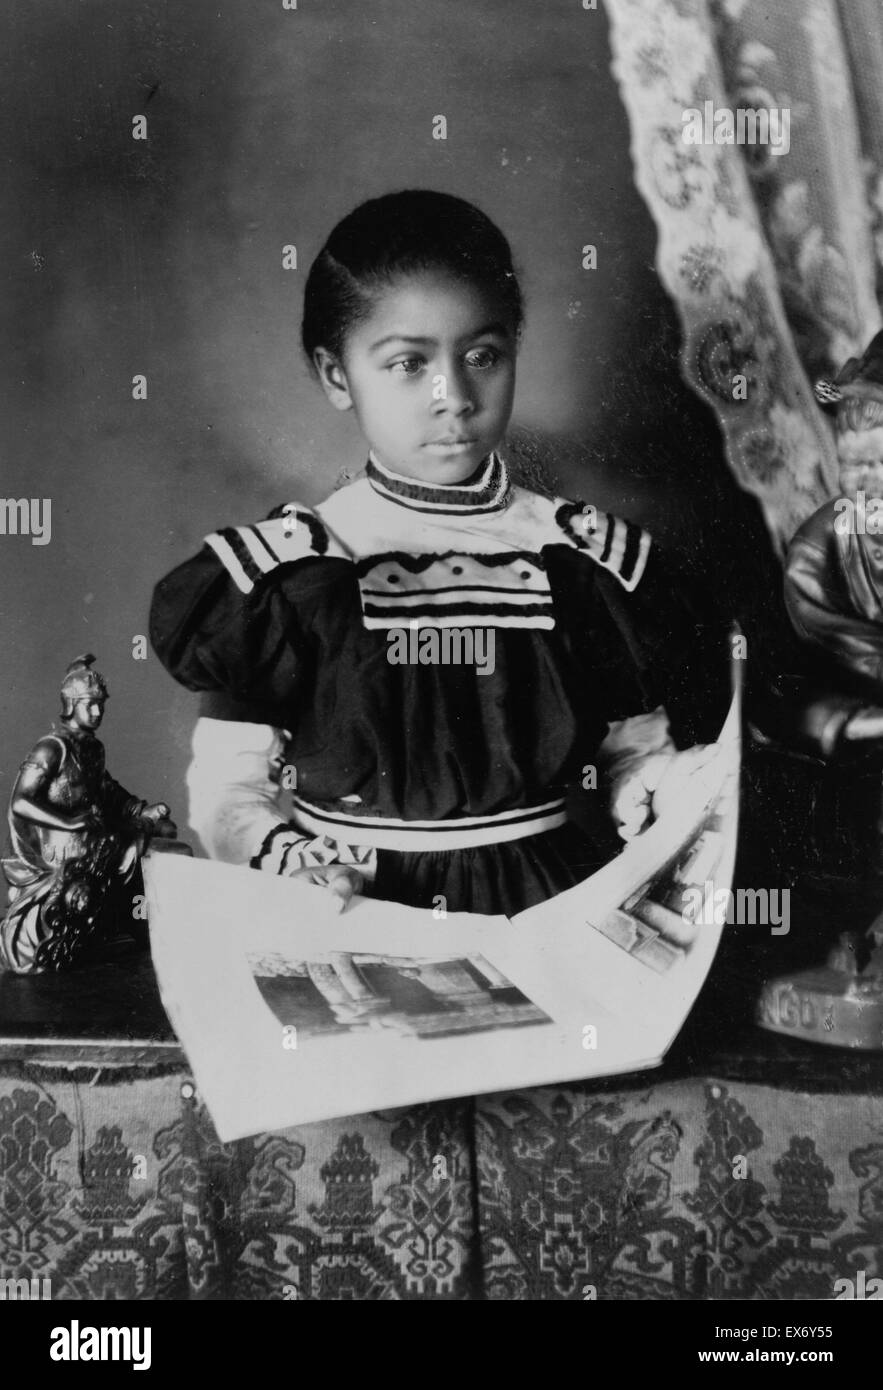 African American girl, half-length portrait, standing at table with illustrated book, facing slightly right. Types - Stock Image